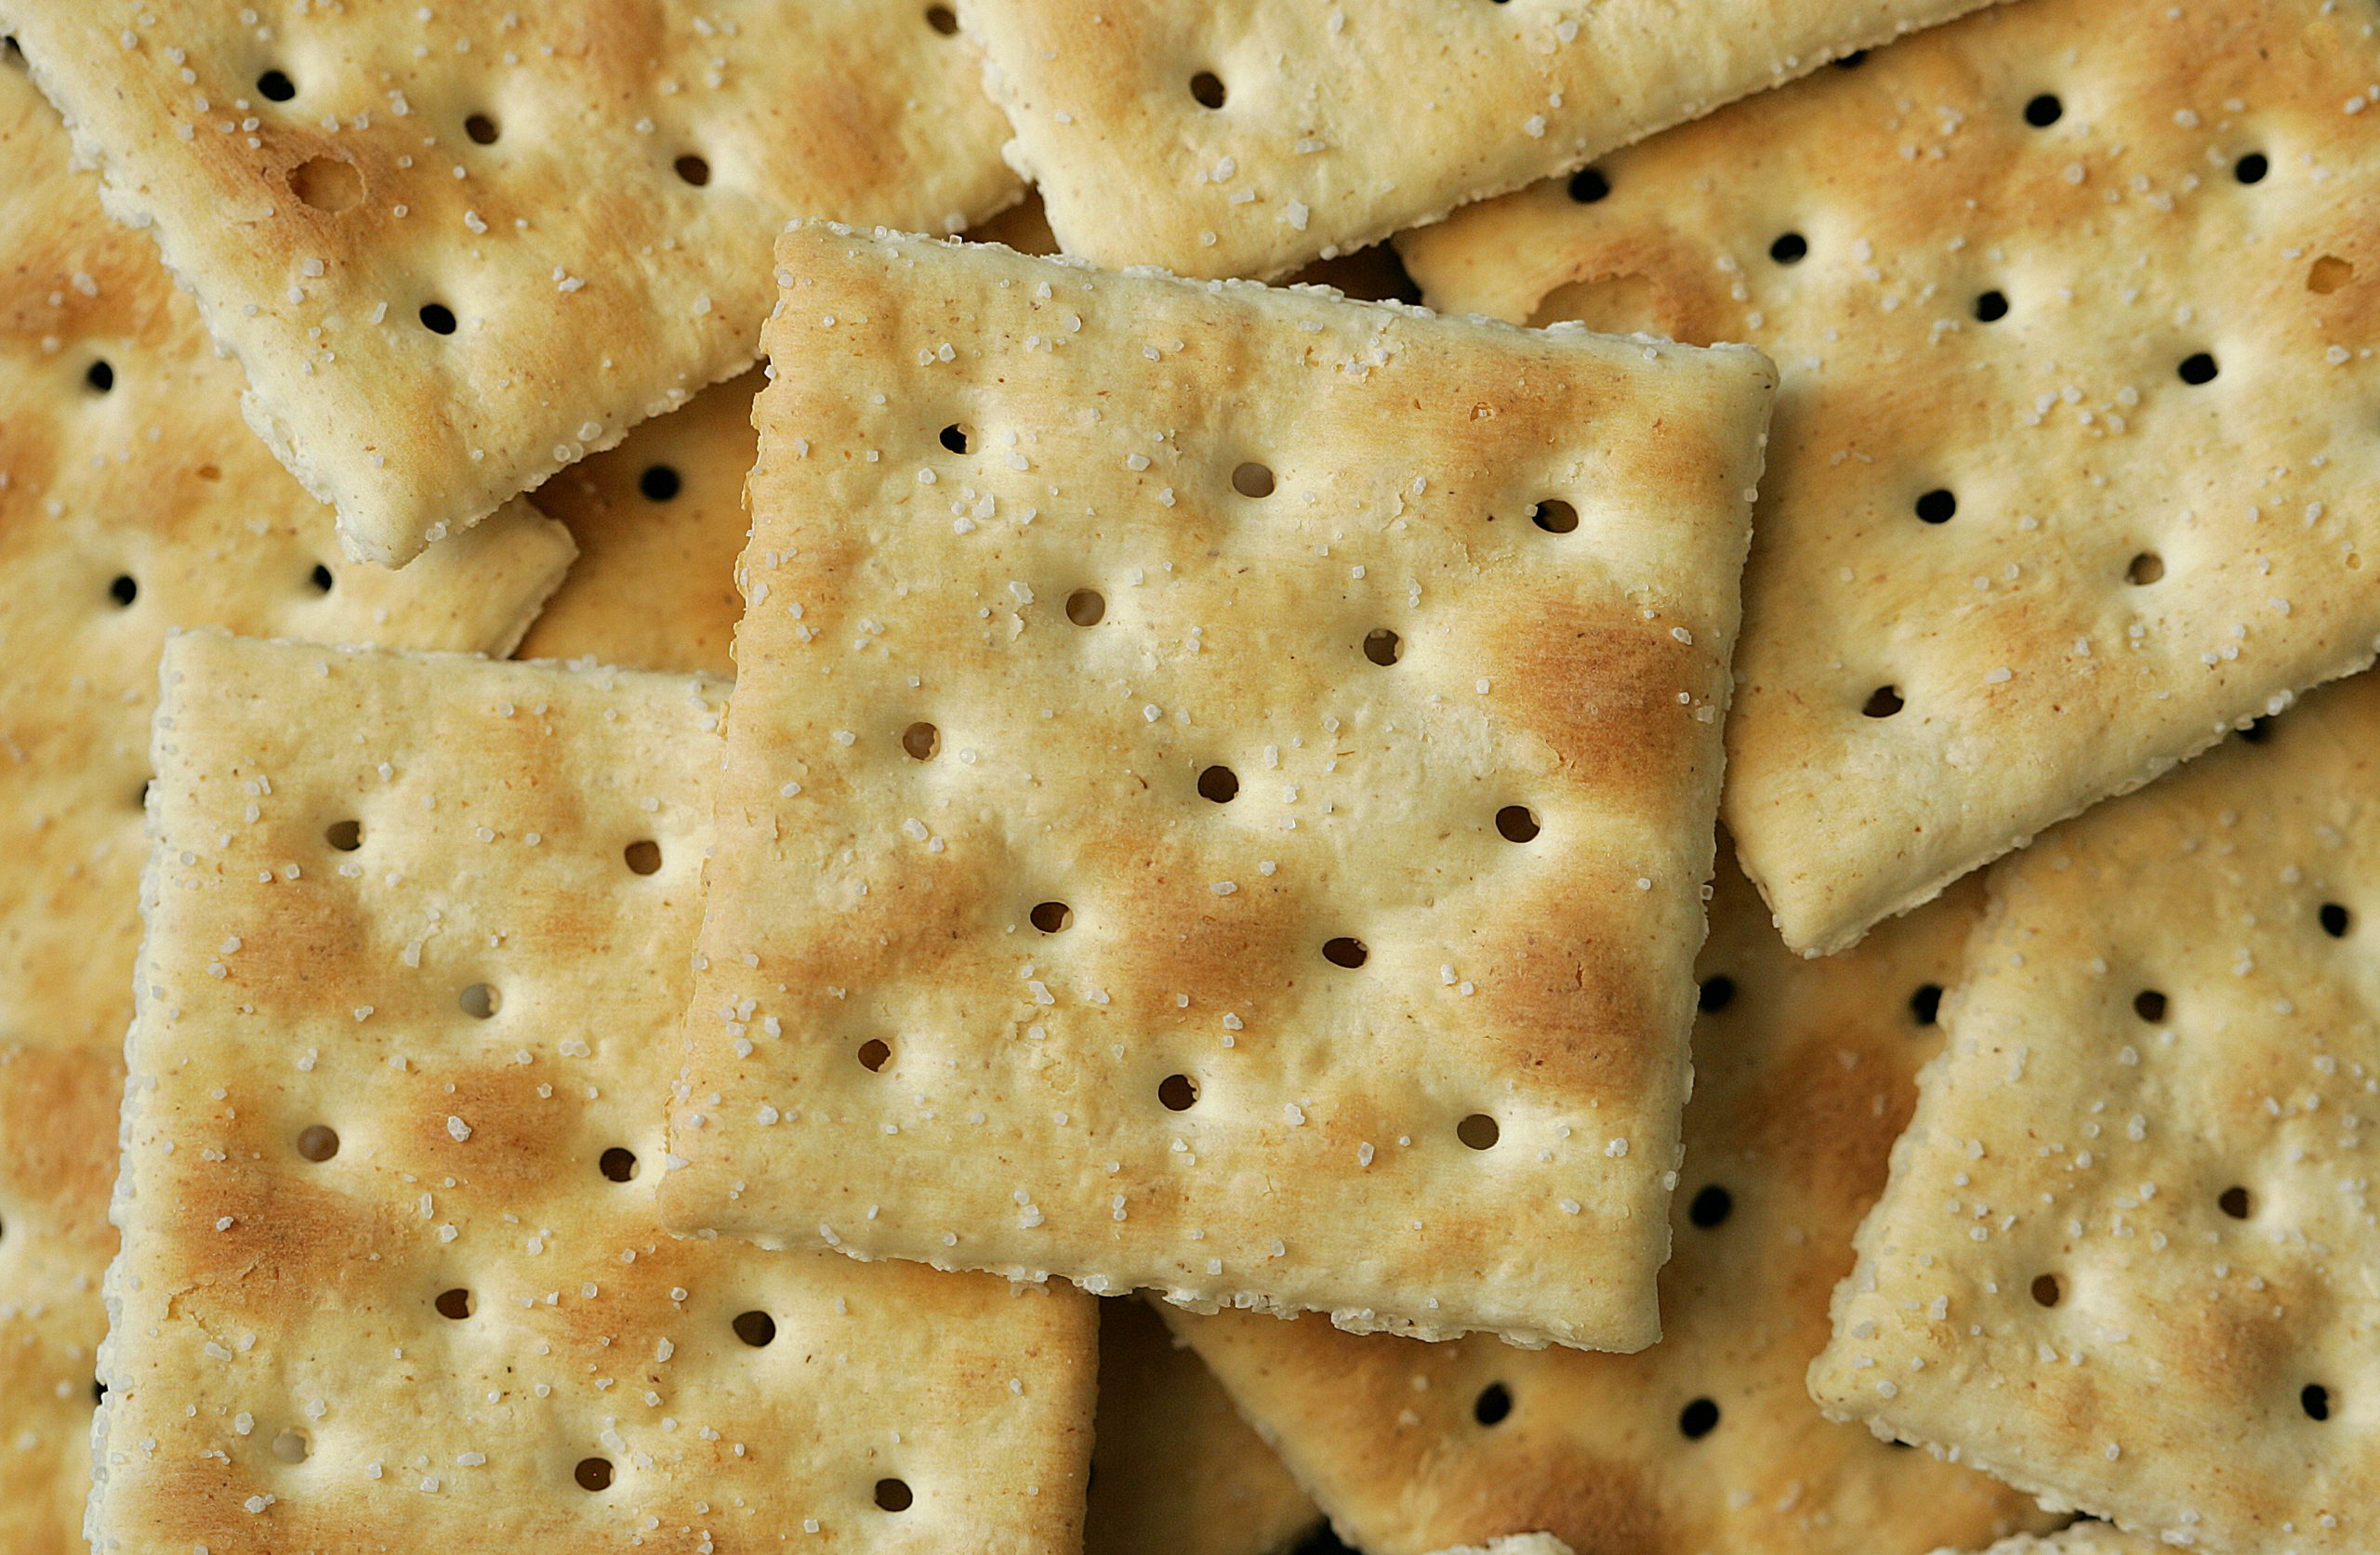 saltine crackers close up full frame